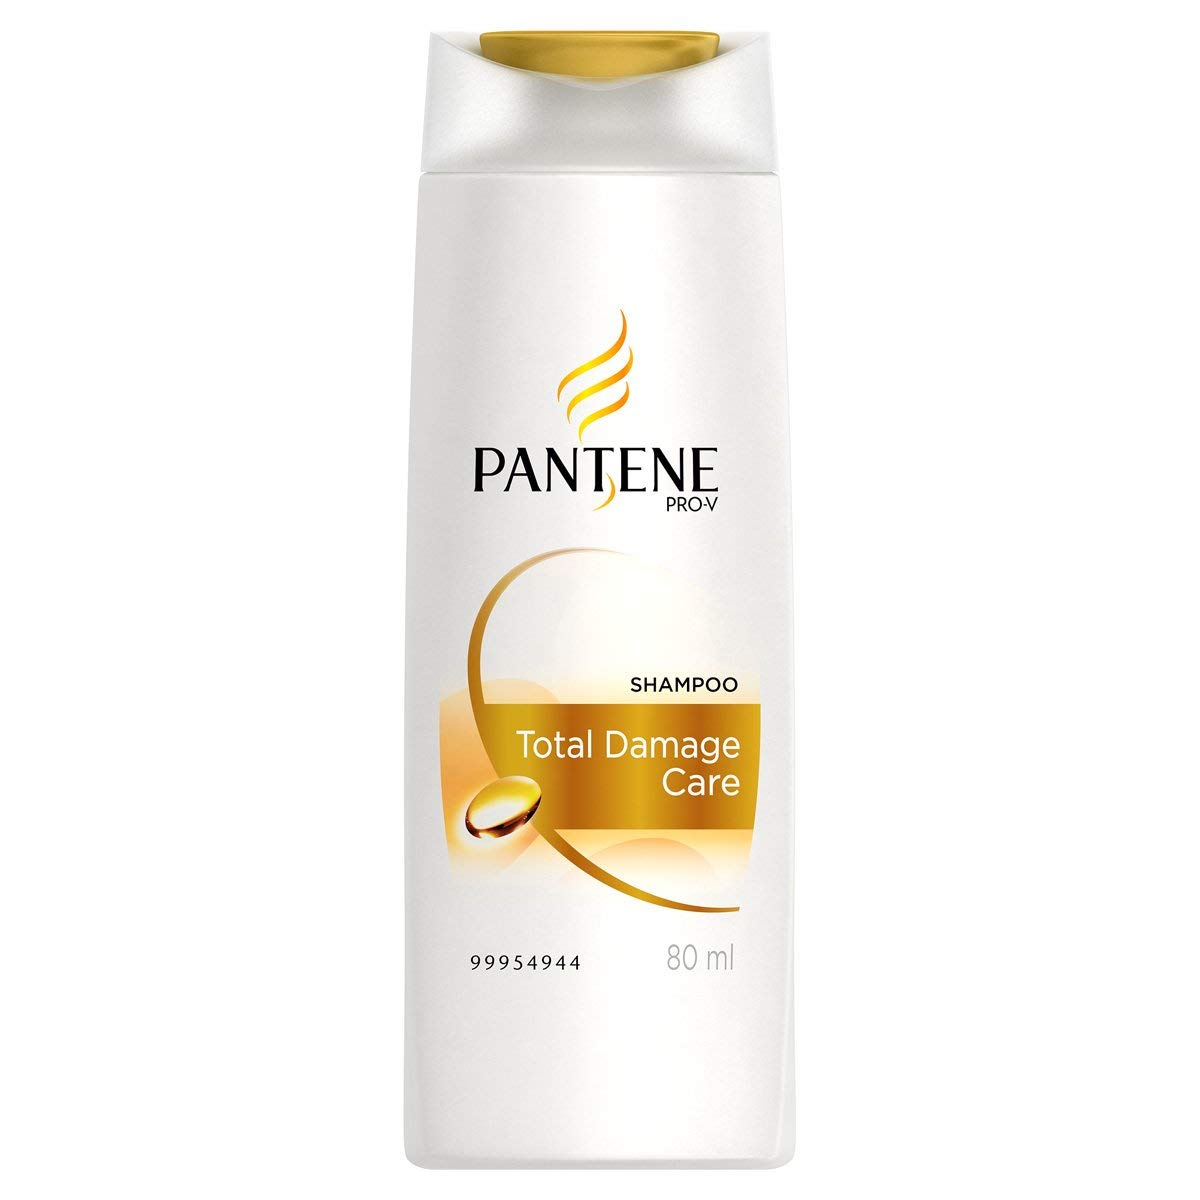 Pantene Total Damage Care 80ml